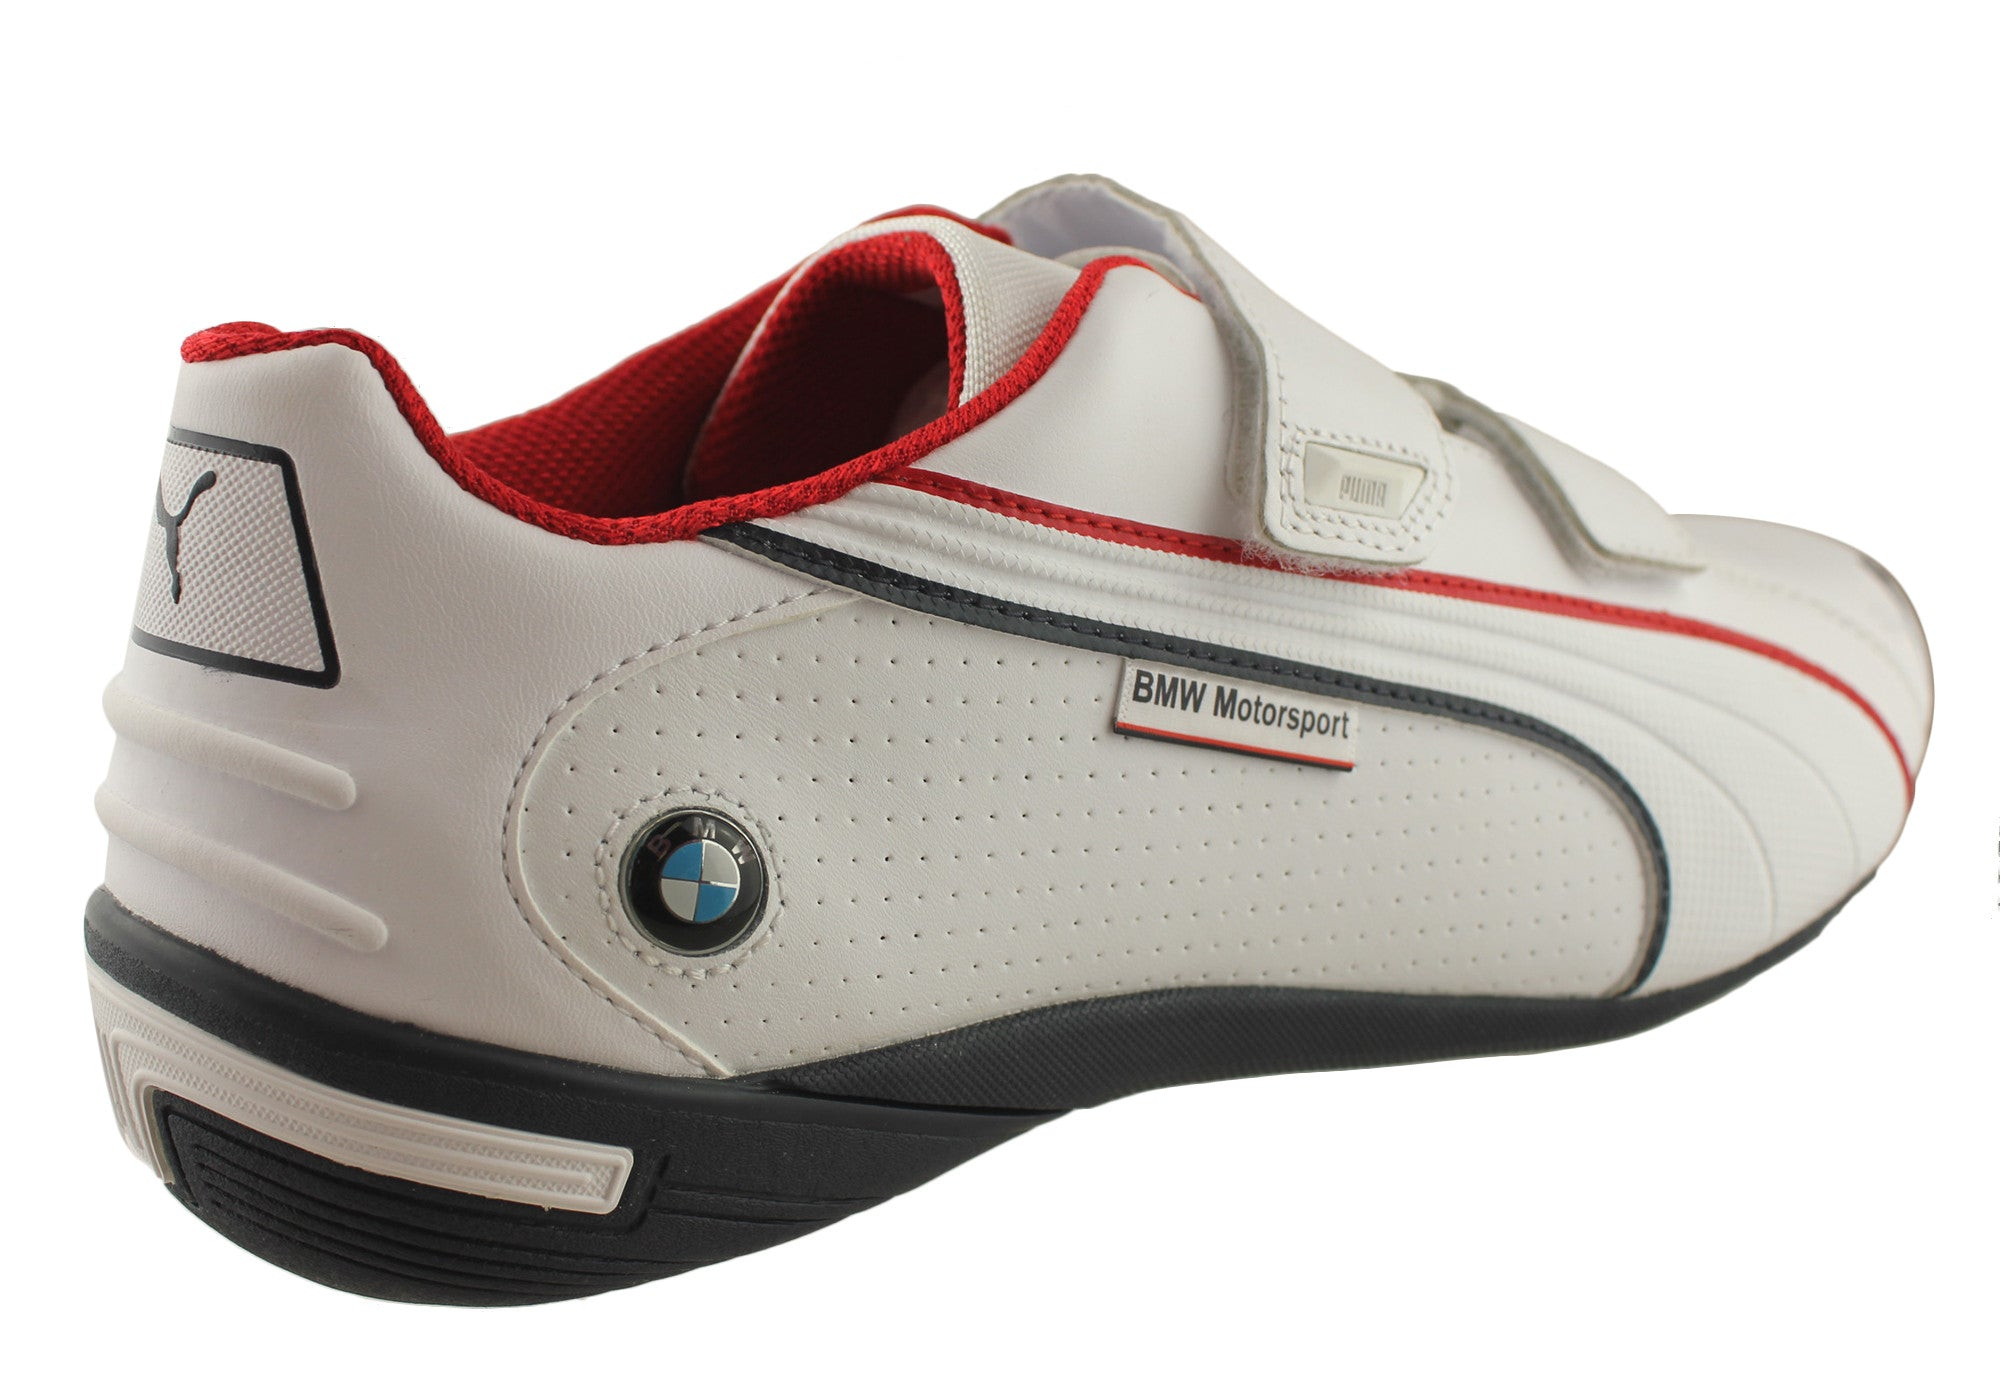 Puma Racing Shoes For Sale